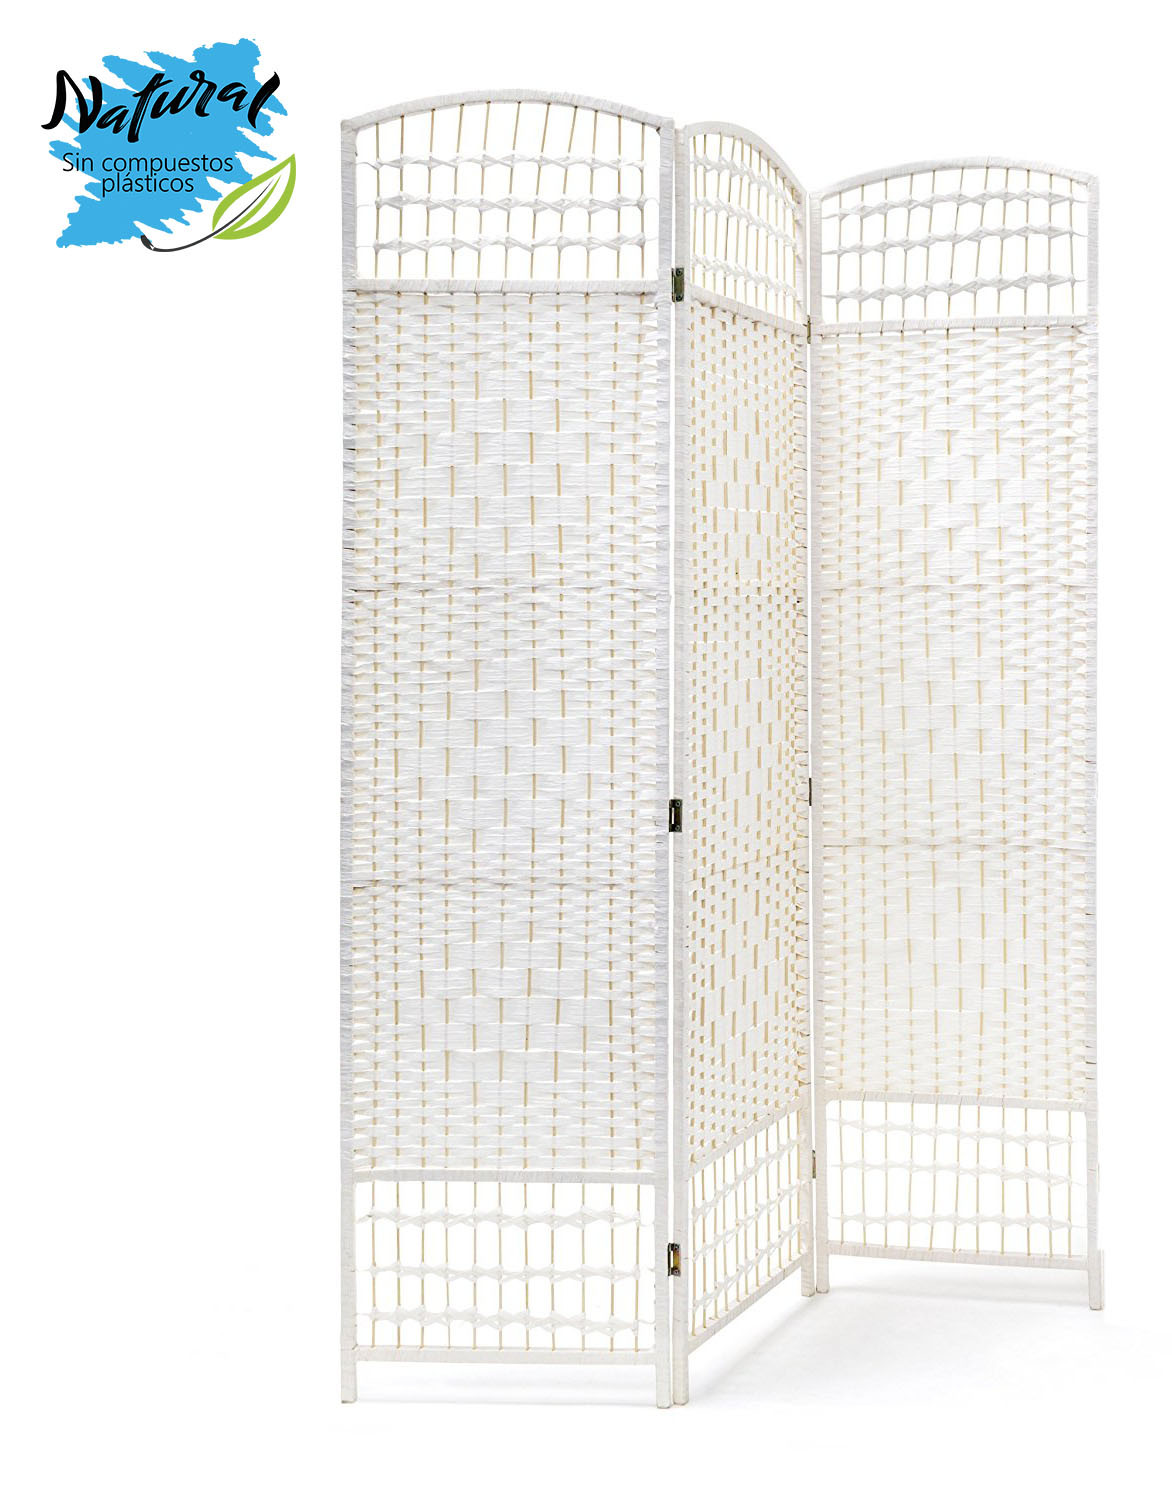 Folding screen White Natural Bamboo for living Room/Bedroom, STAINLESS steel legs. Functional design - Home and More